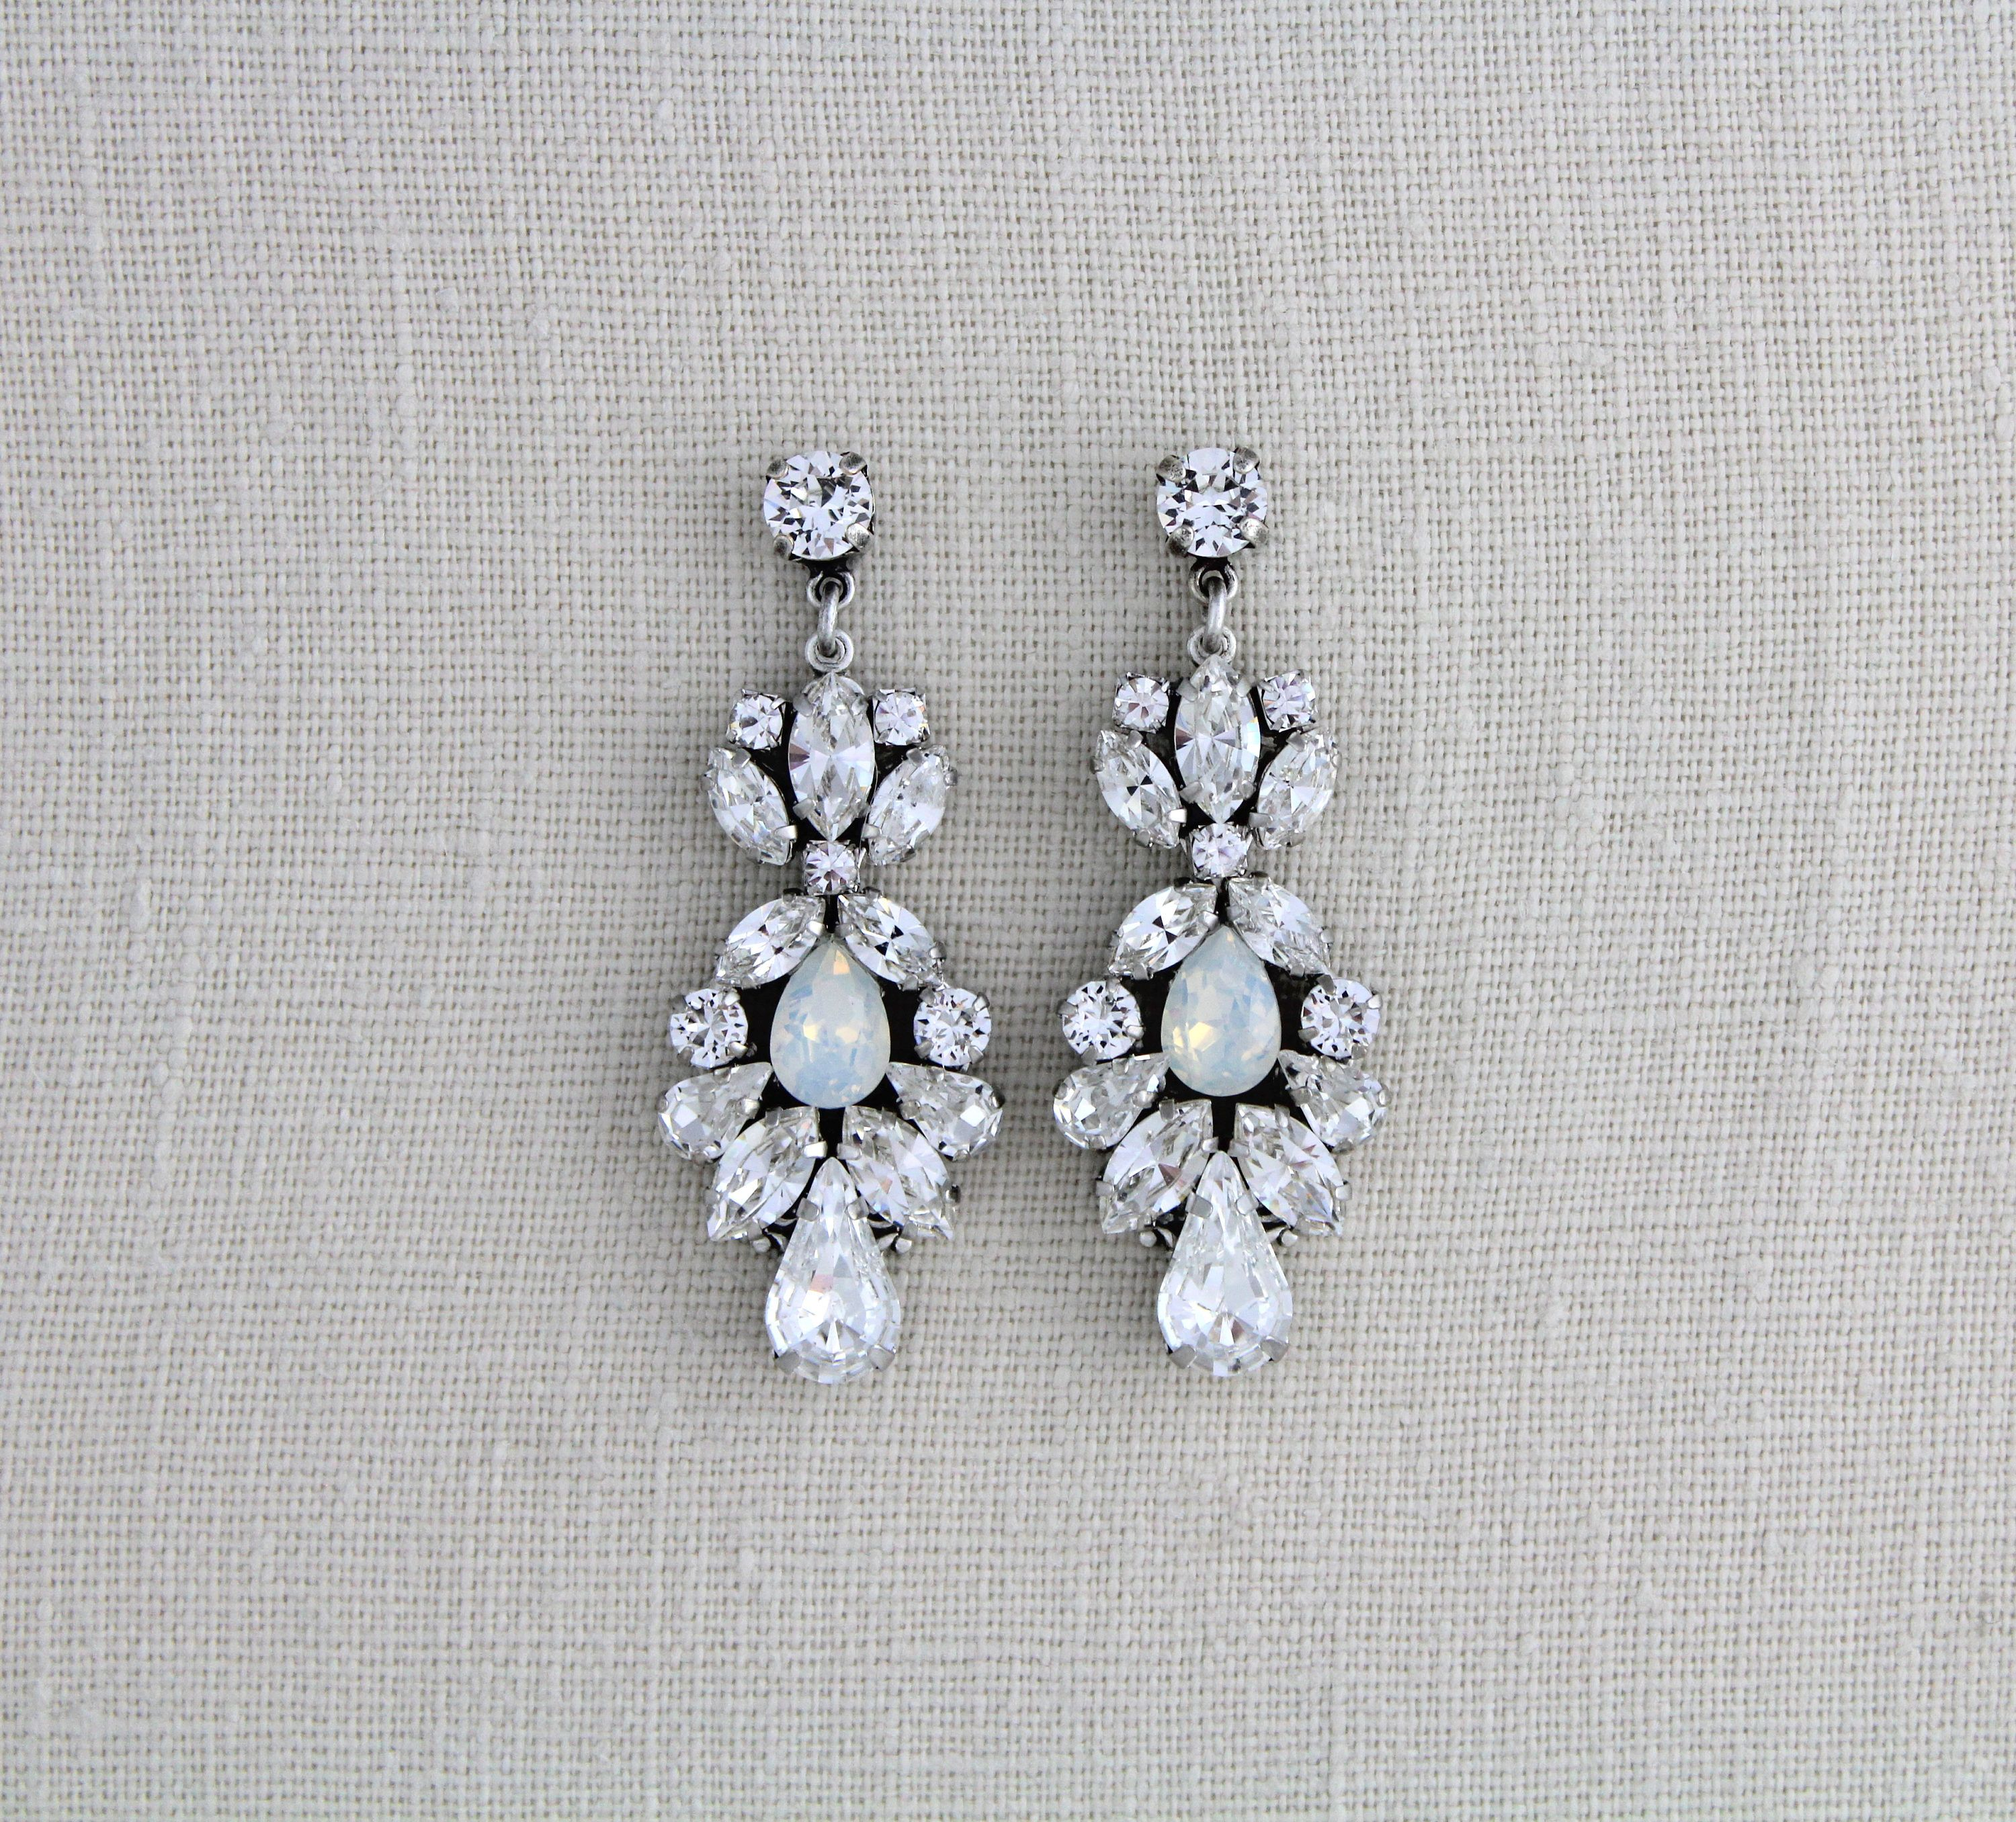 Crystal Bridal Earrings Swarovski Wedding Jewelry White Opal Chandelier Statement Vintage